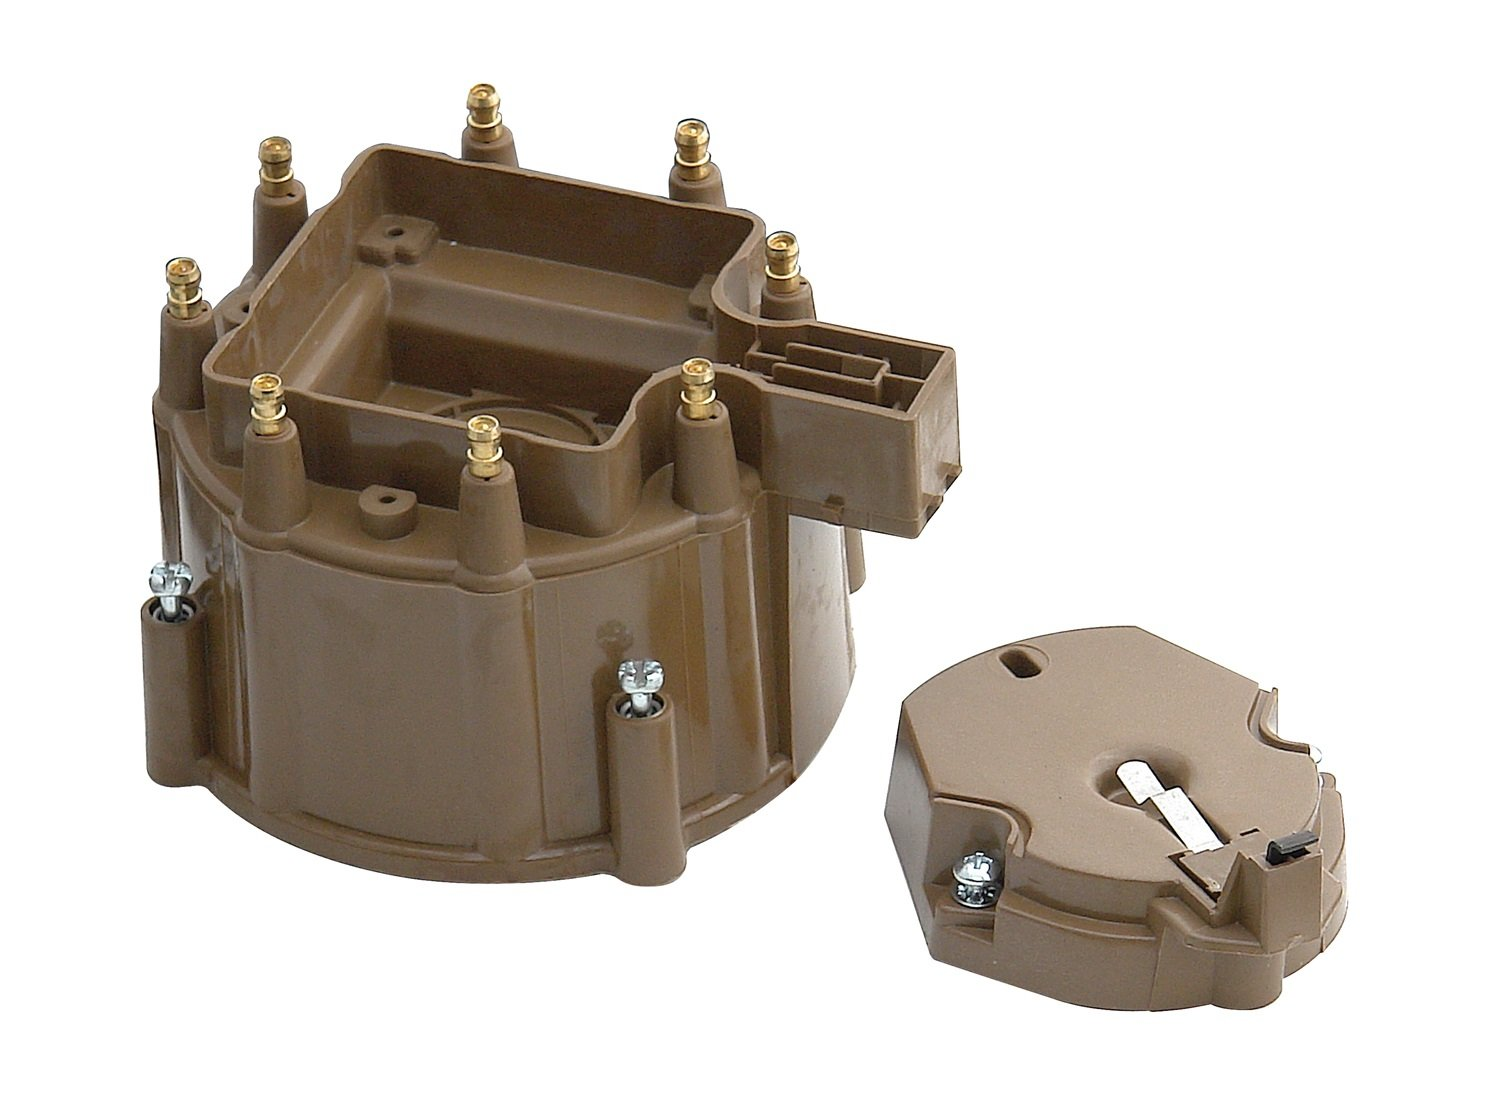 ACCEL 8122 Distributor Cap and Rotor Kit - Tan nobrandname 8122ACC